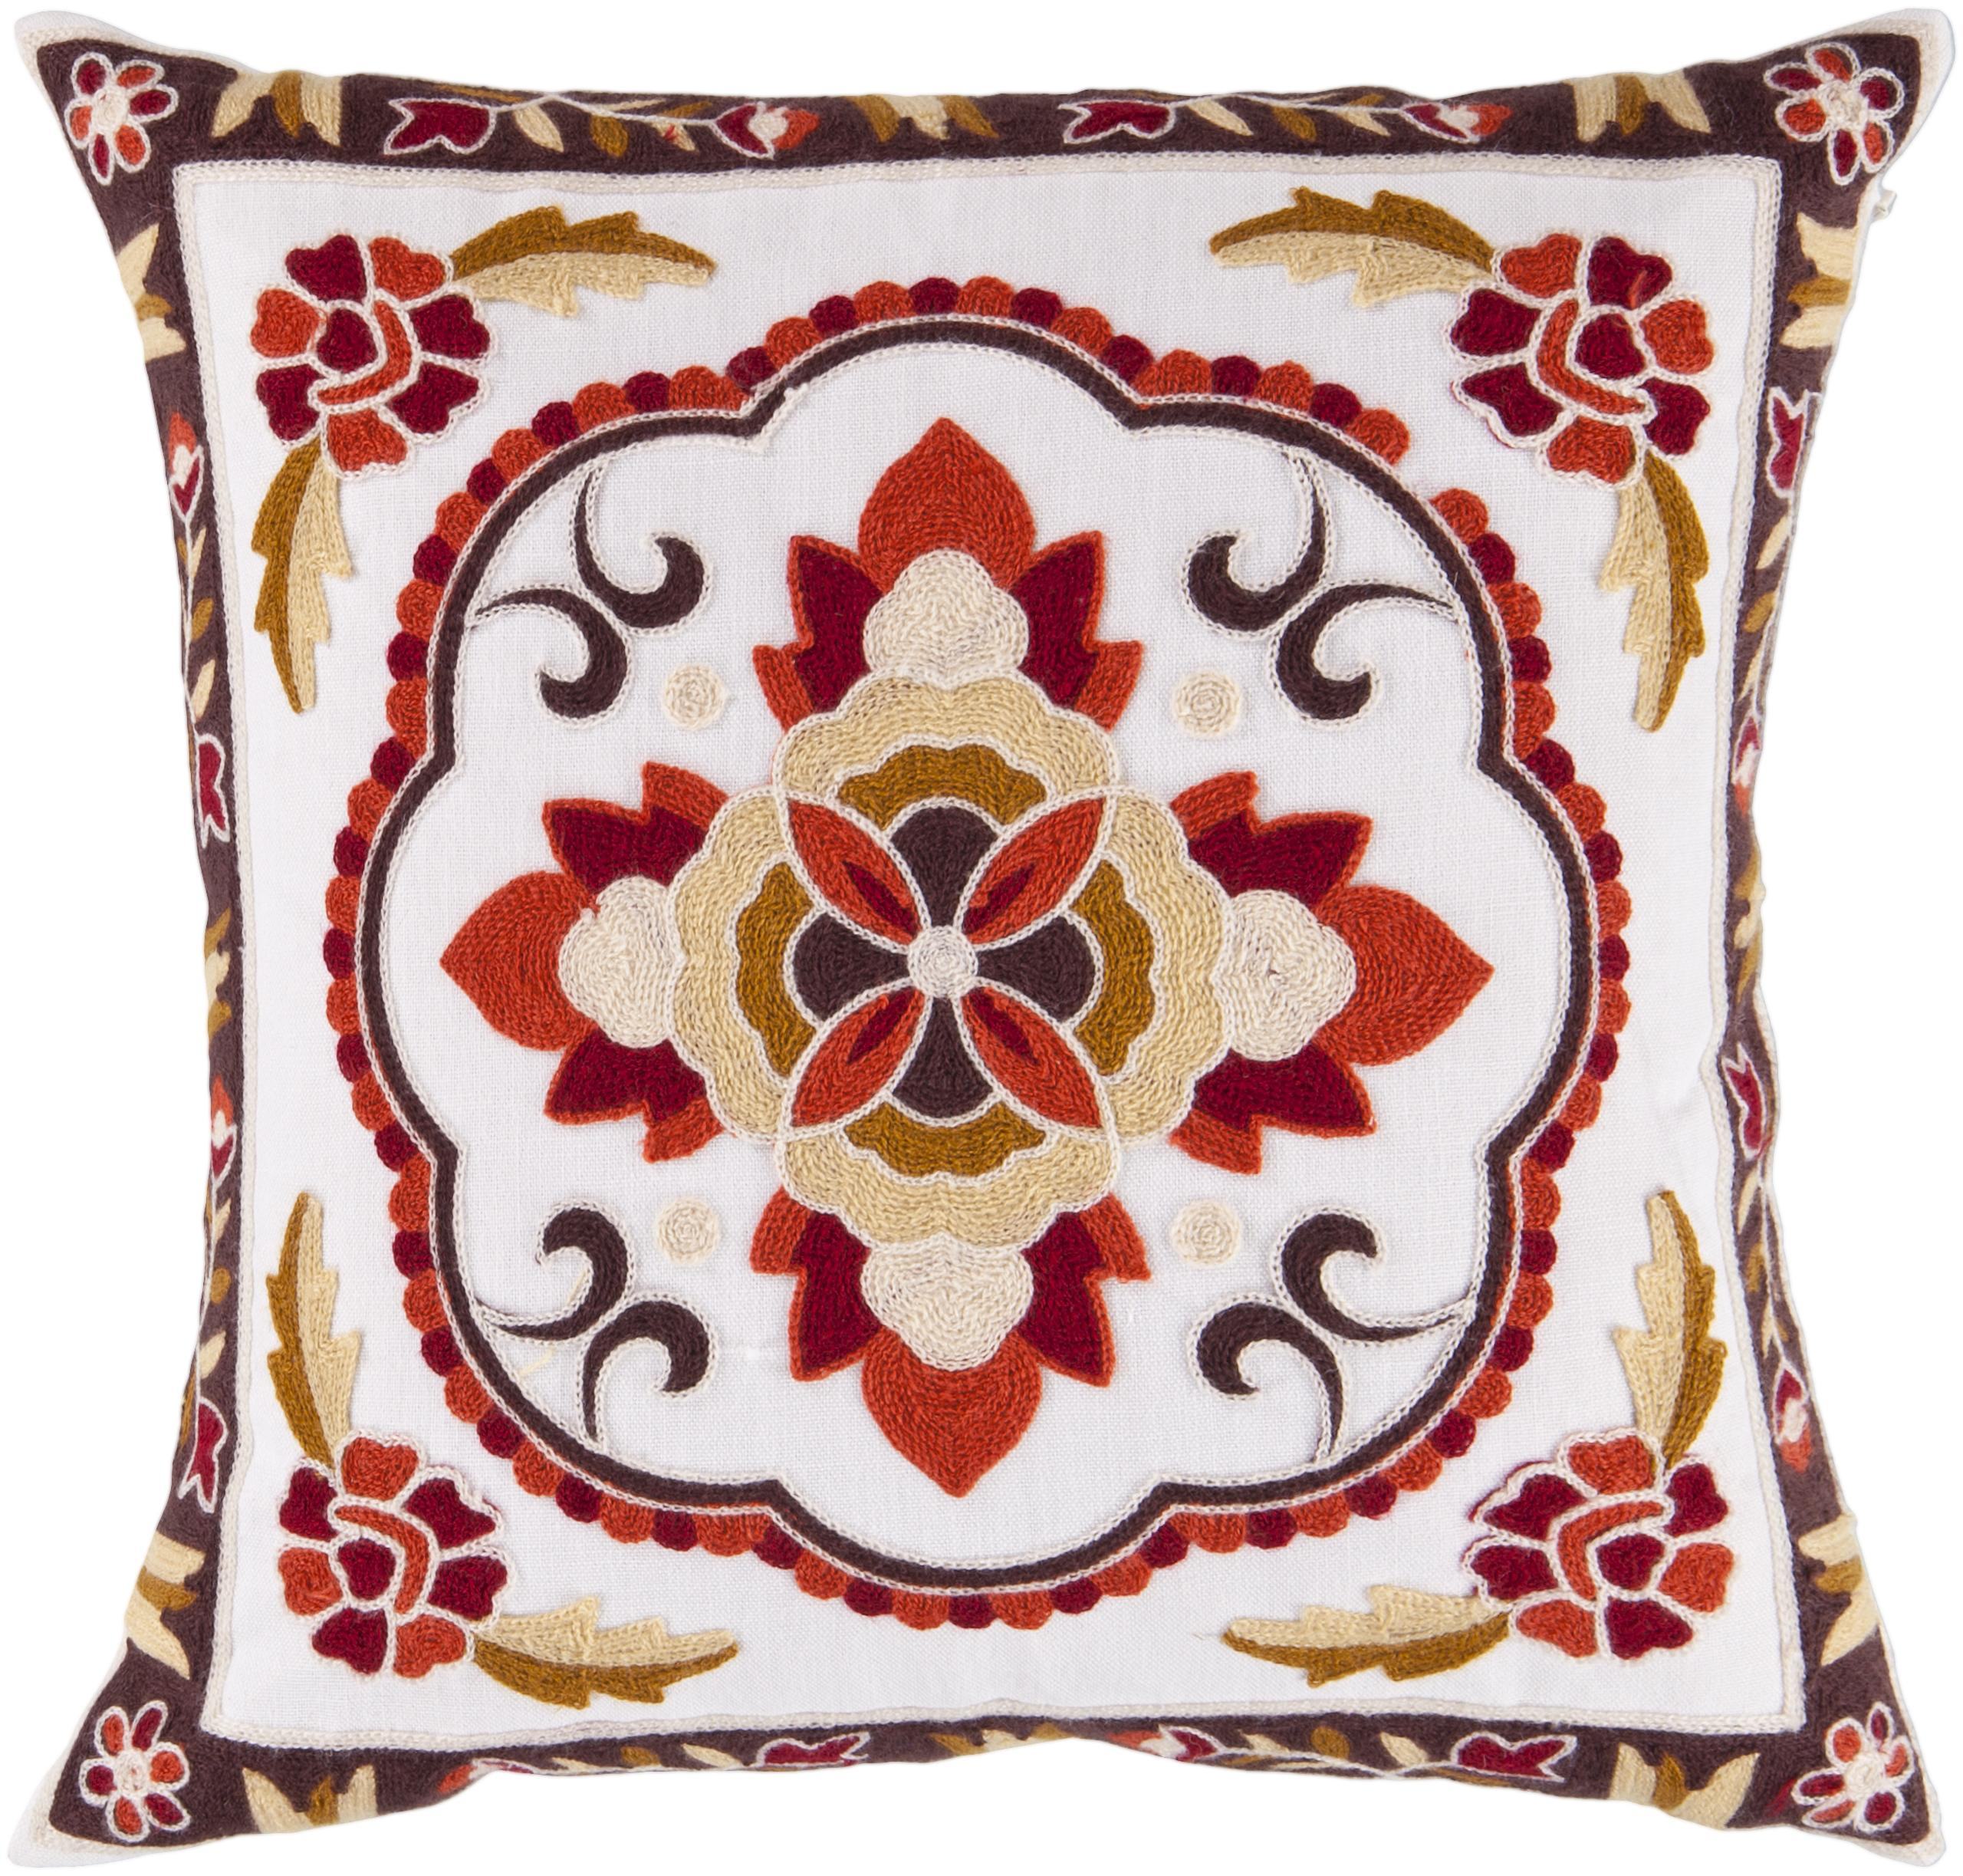 "Surya Pillows 18"" x 18"" Pillow - Item Number: FF025-1818P"